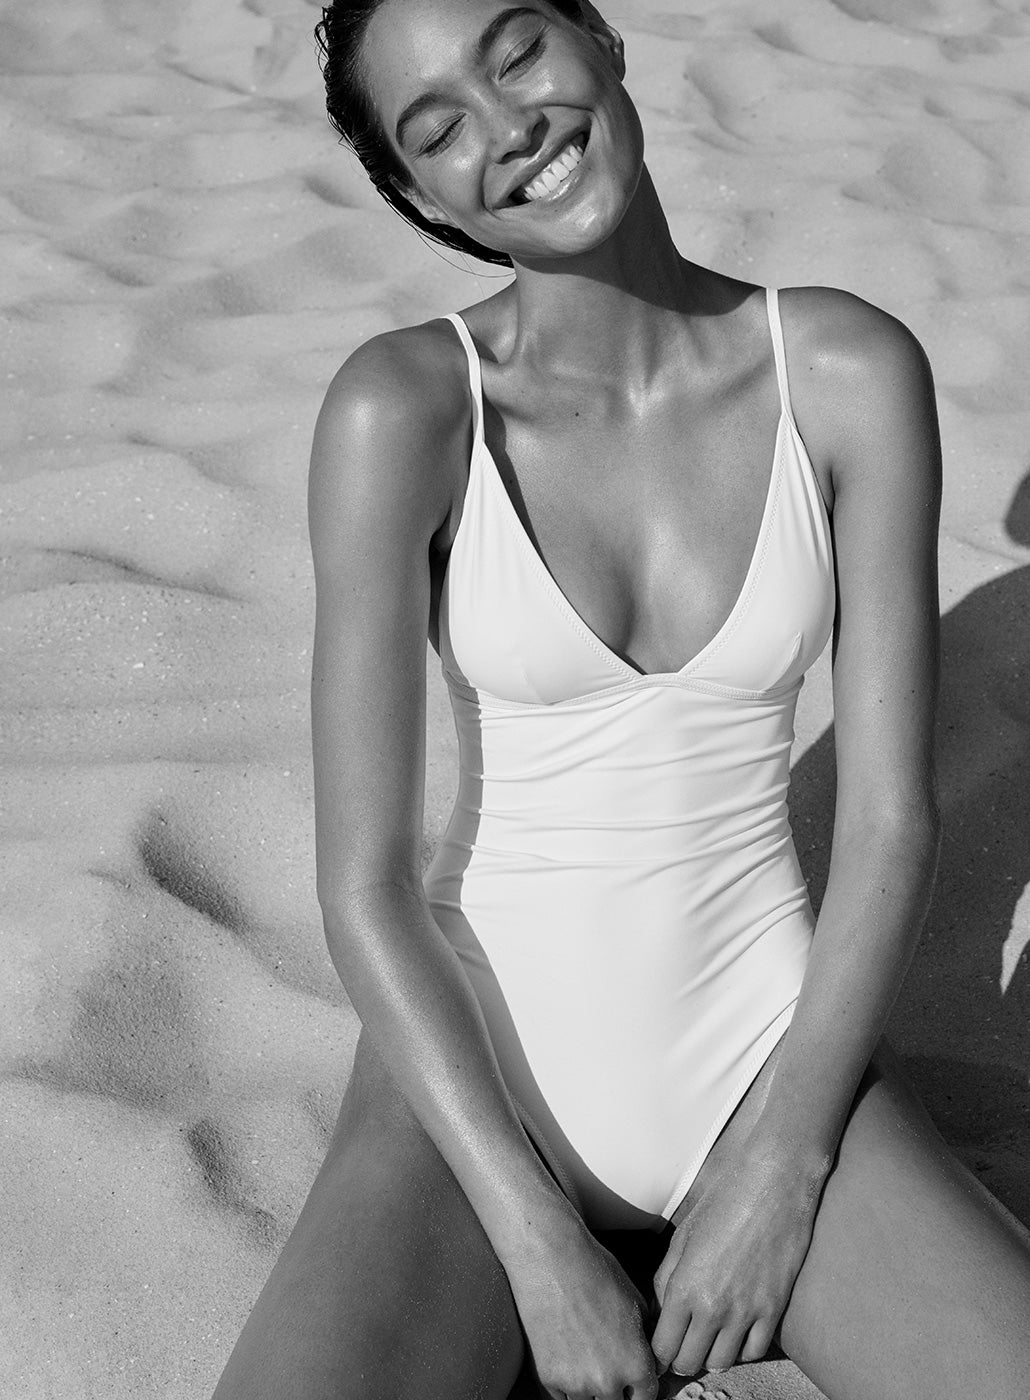 ScanlanTheodore_Summer19_Campaign_Swim_Image3